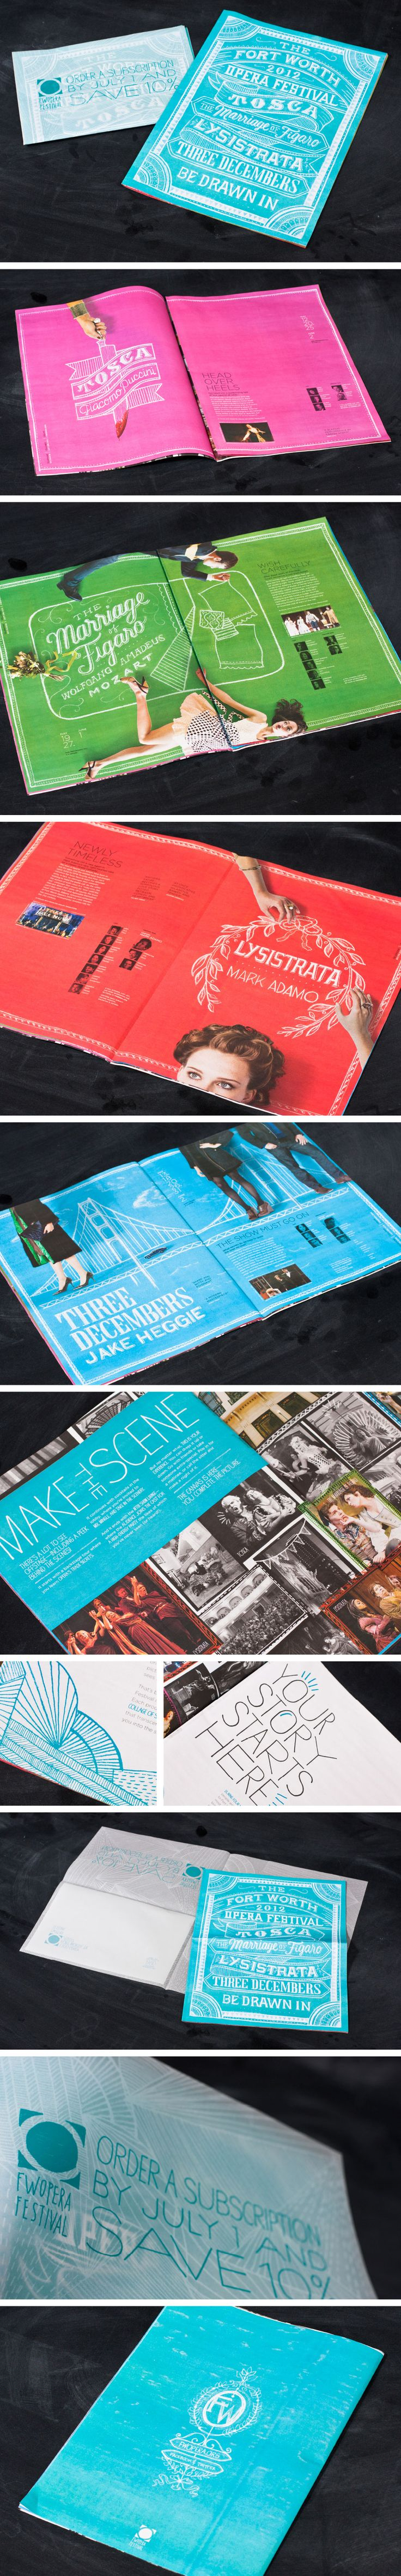 FORT WORTH OPERA 2011 BROCHURE|Matchbox Studio